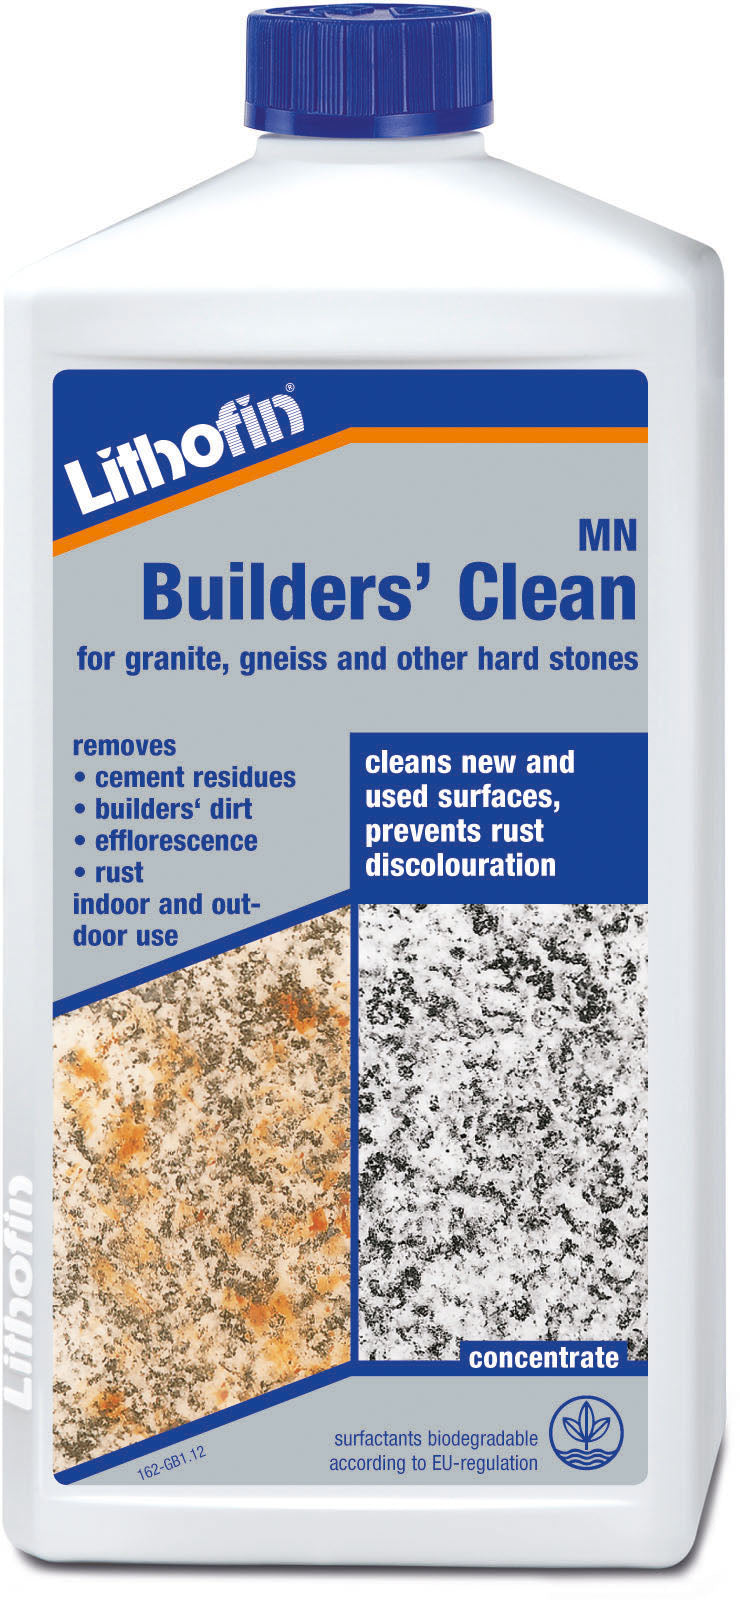 Lithofin Builders' Clean for granite, gneiss and other hard stones